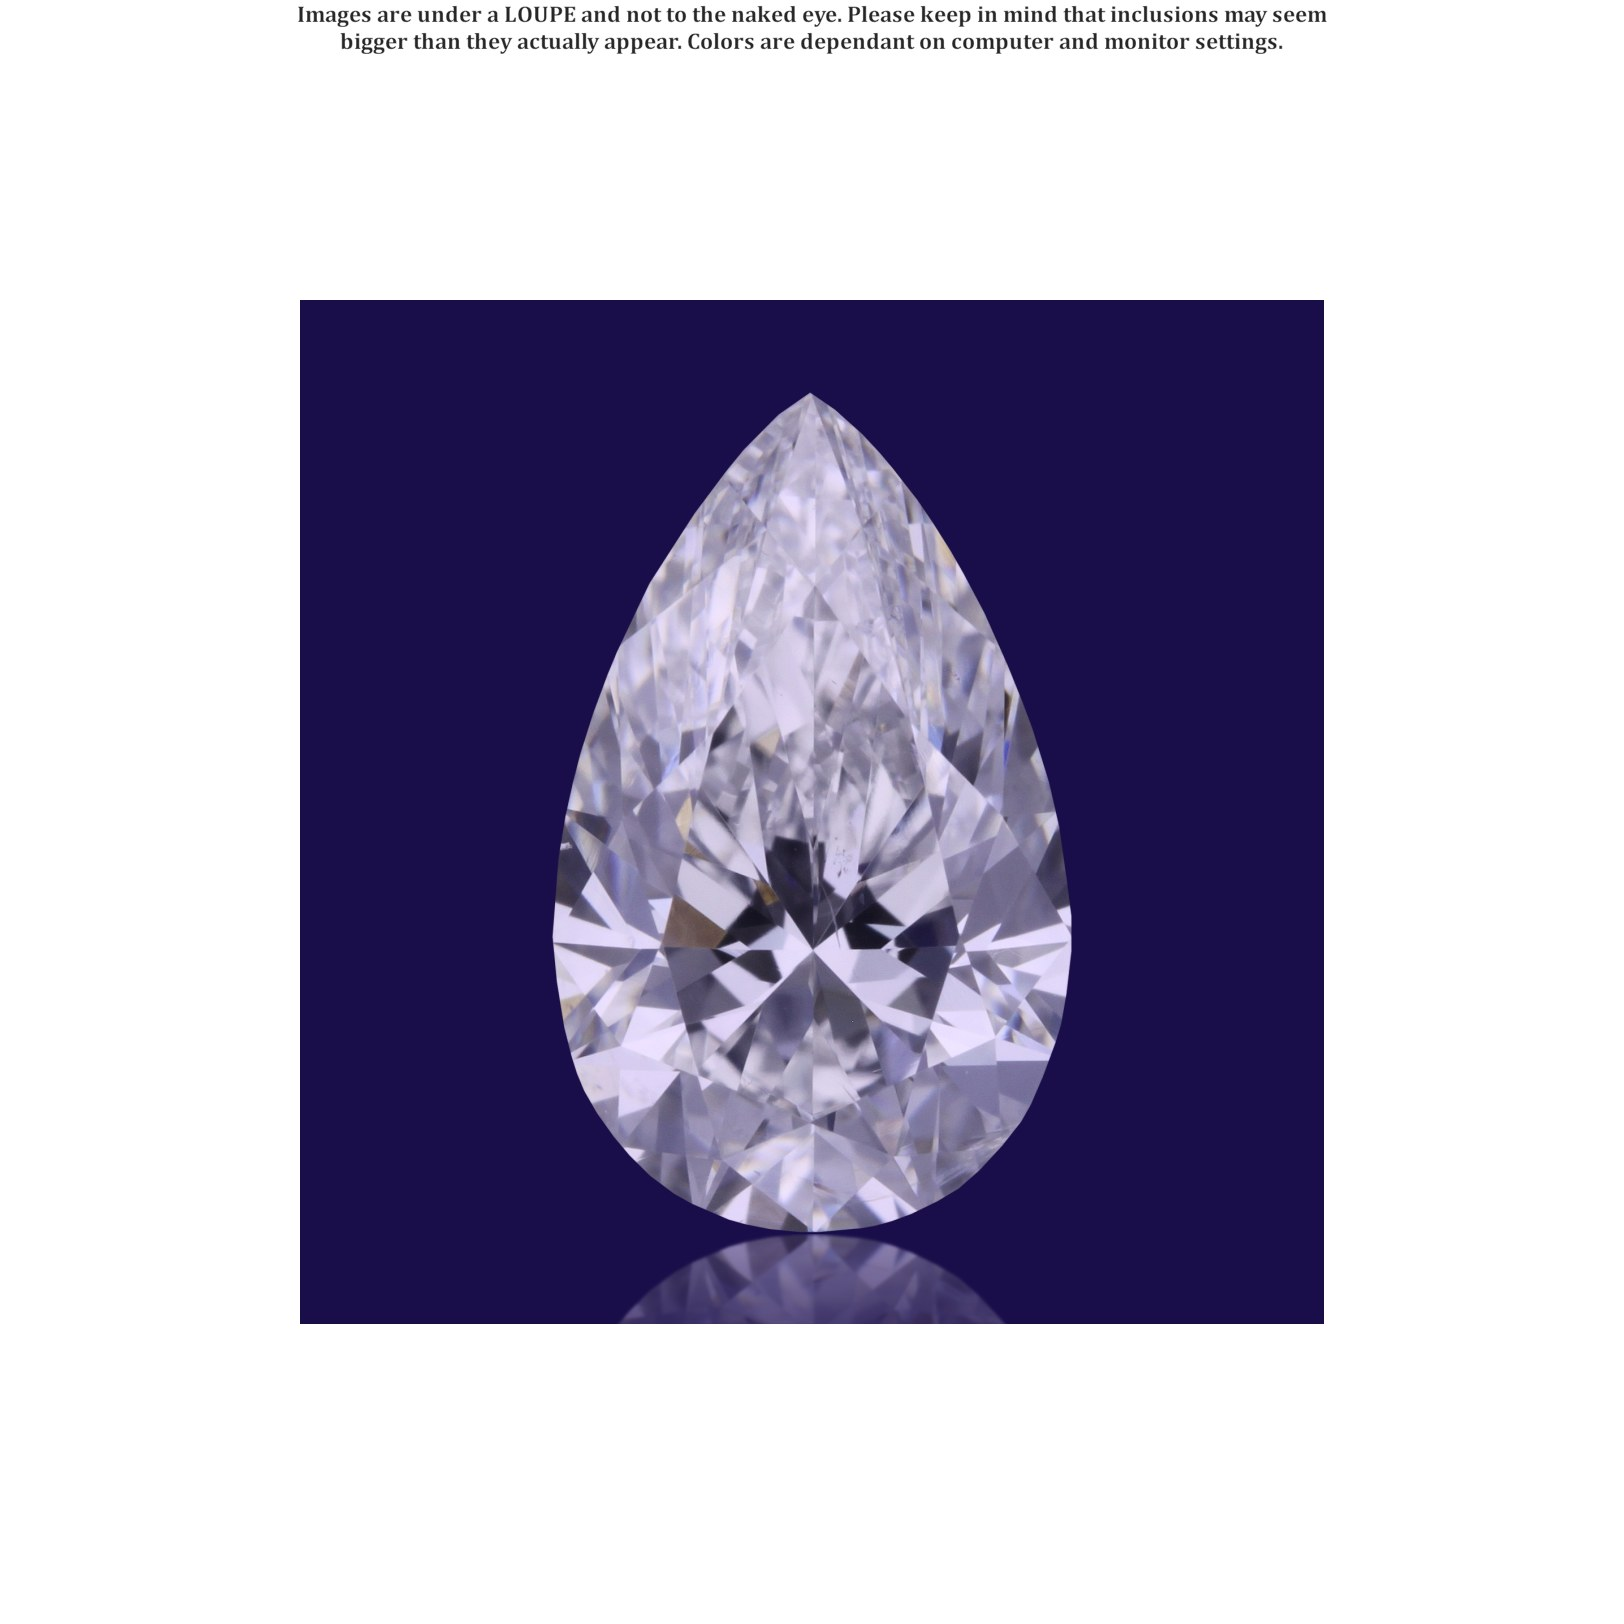 Thurber Jewelers - Diamond Image - .00704